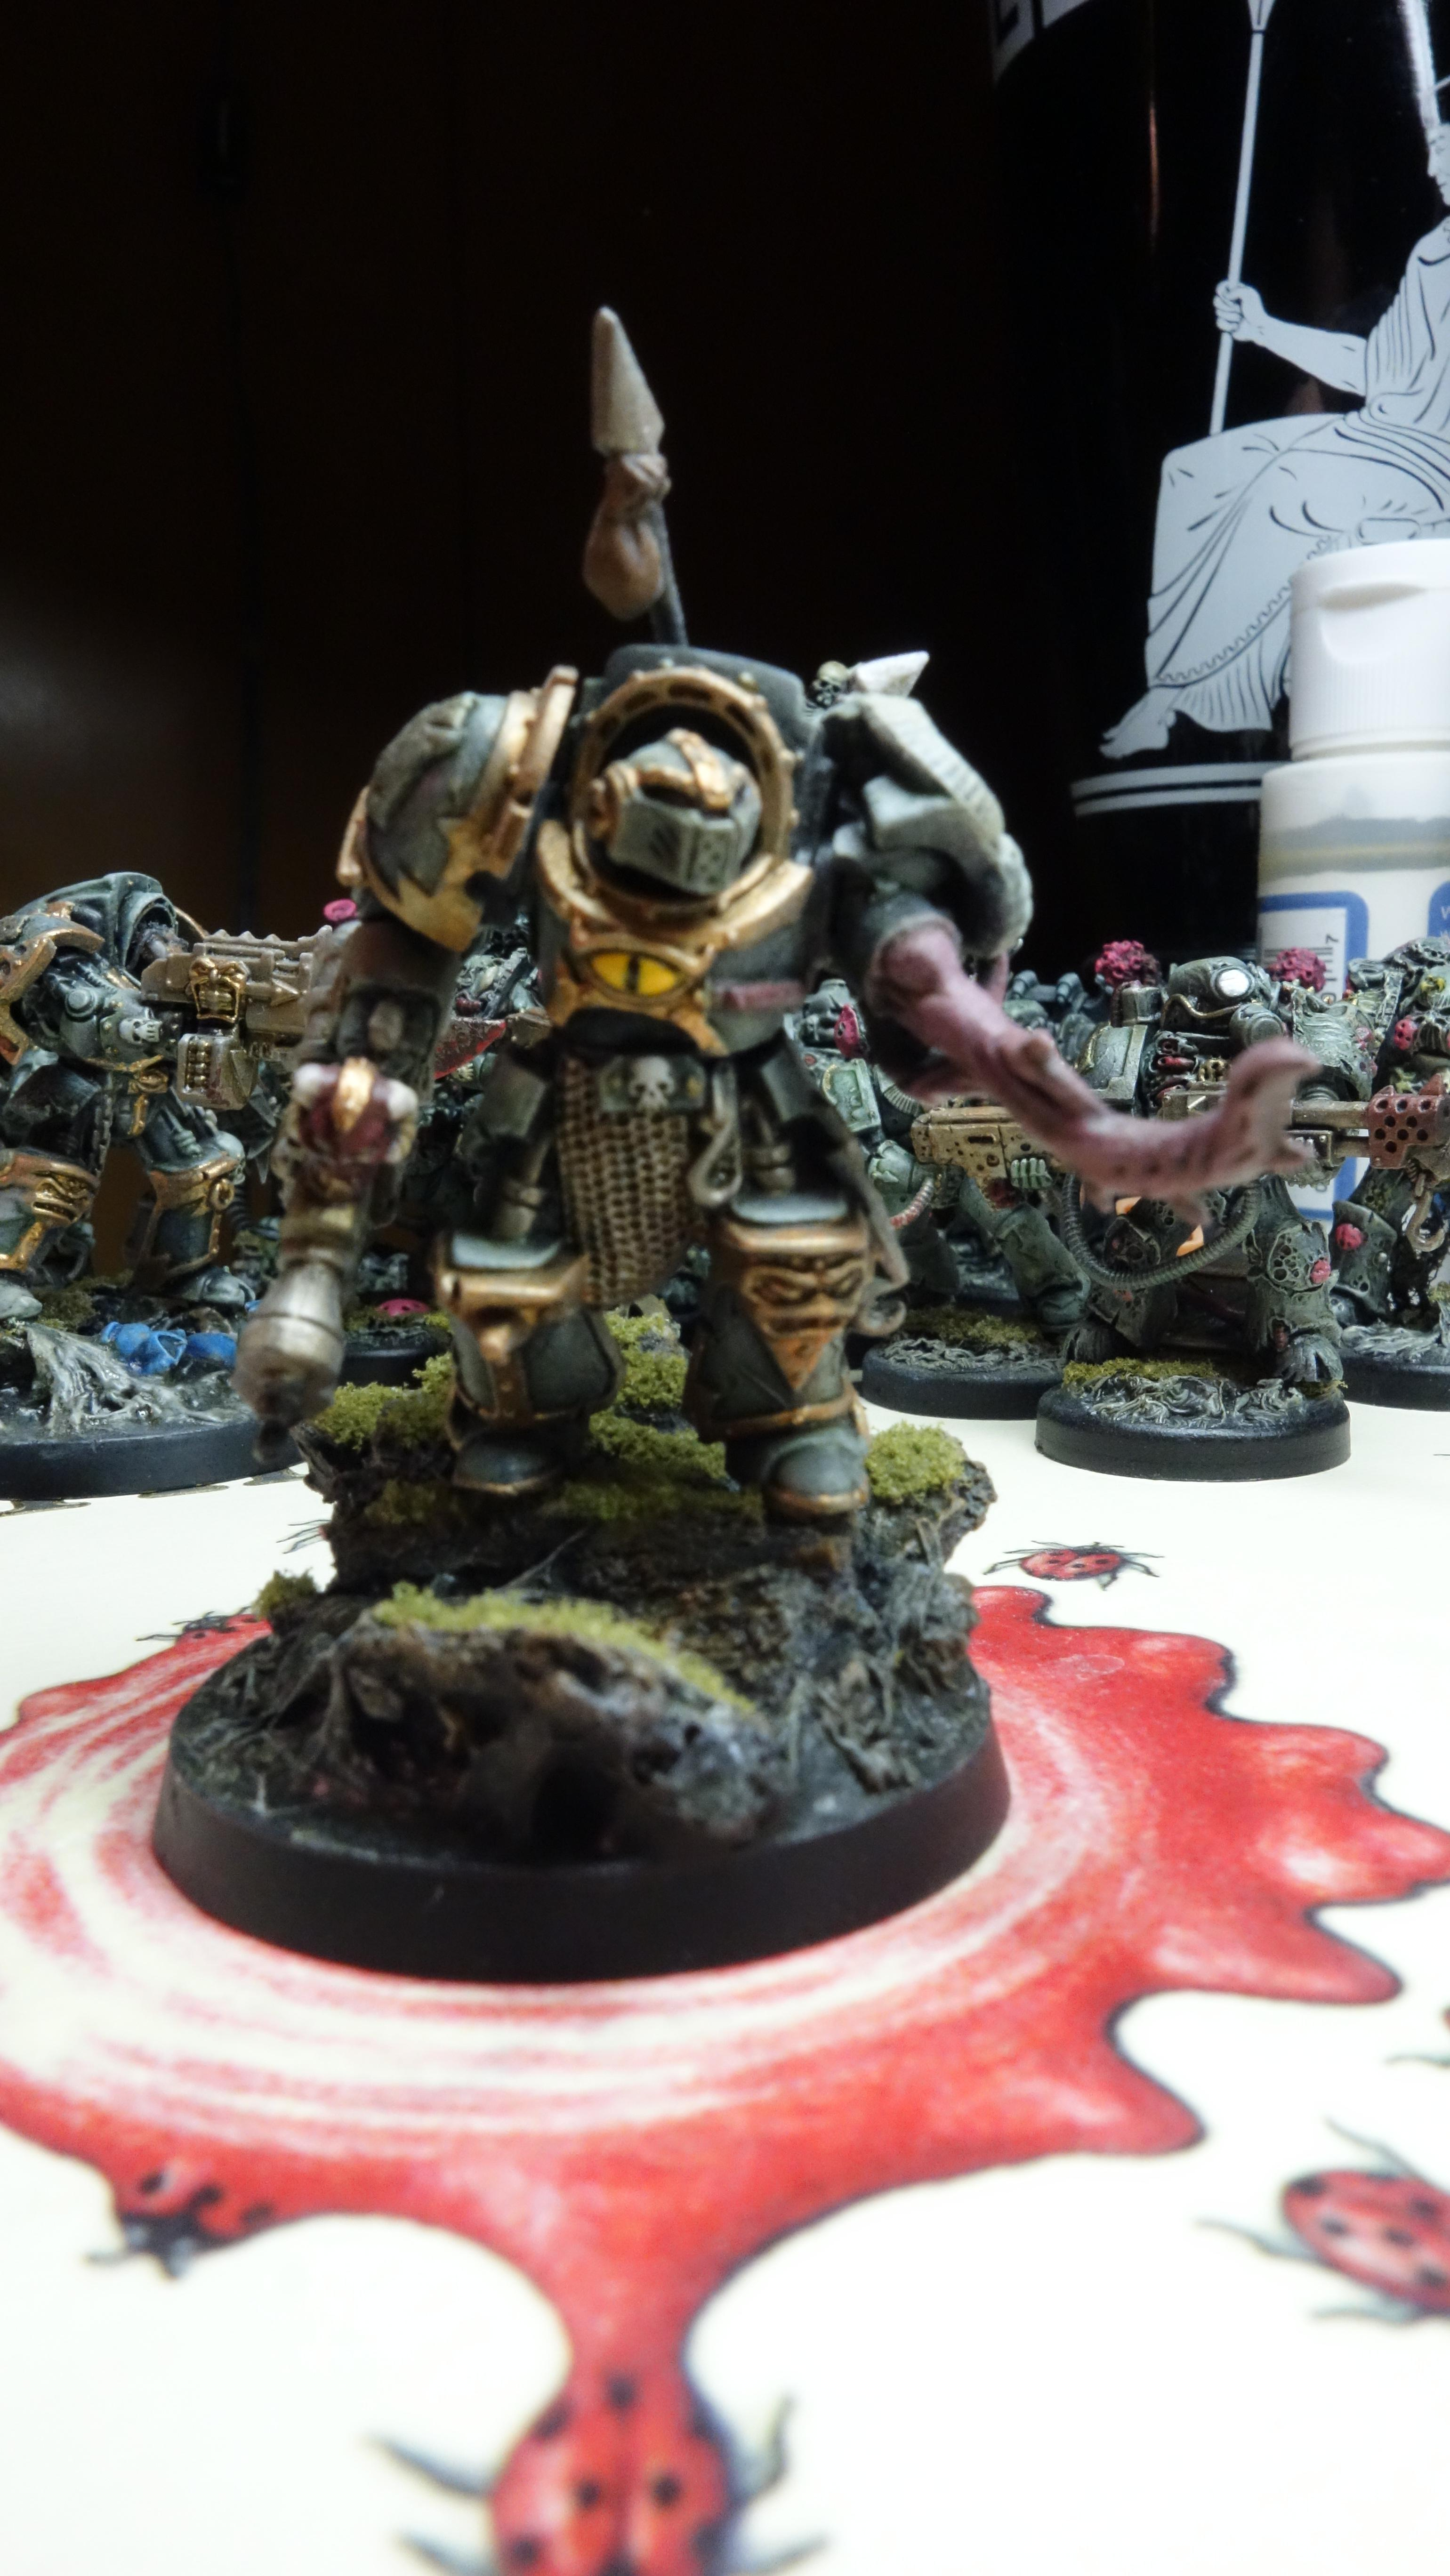 Chaos, Chaos Space Marines, Nurgle, Protectorate Of Menoth, Space Marines, Warhammer 40,000, Warjack, Warmachine